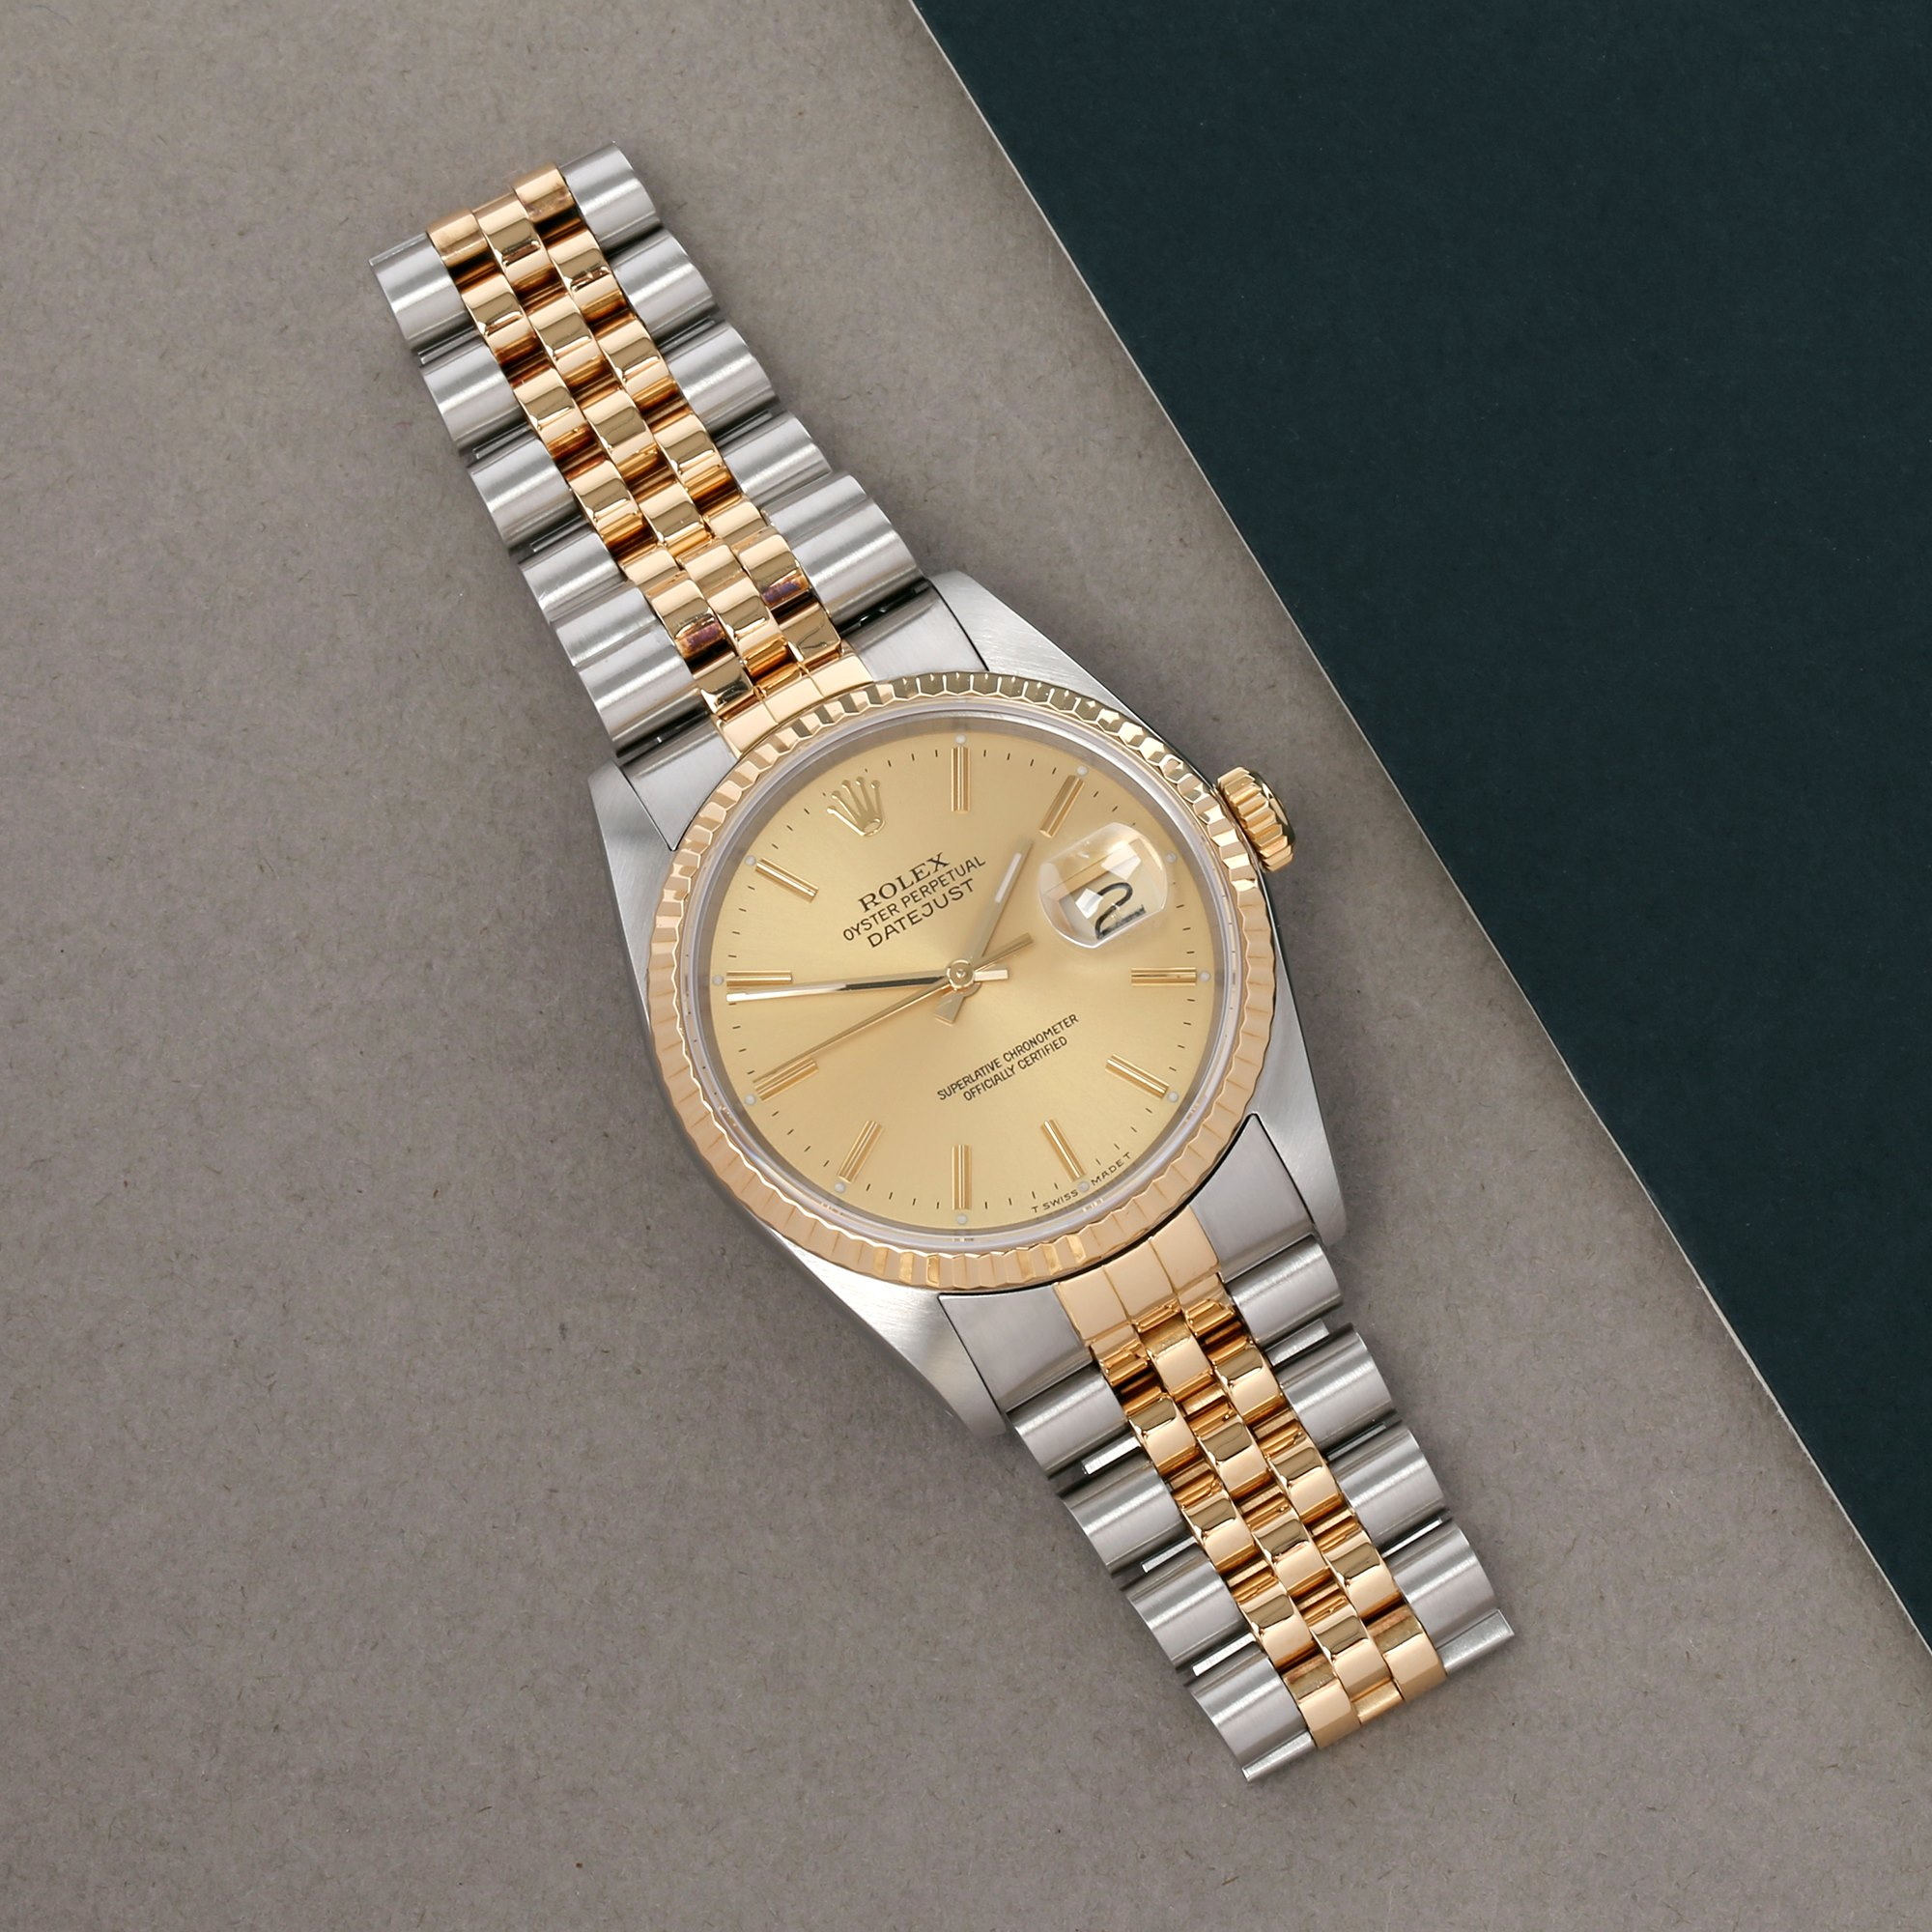 Rolex Datejust 36 18K Yellow Gold & Stainless Steel 16233